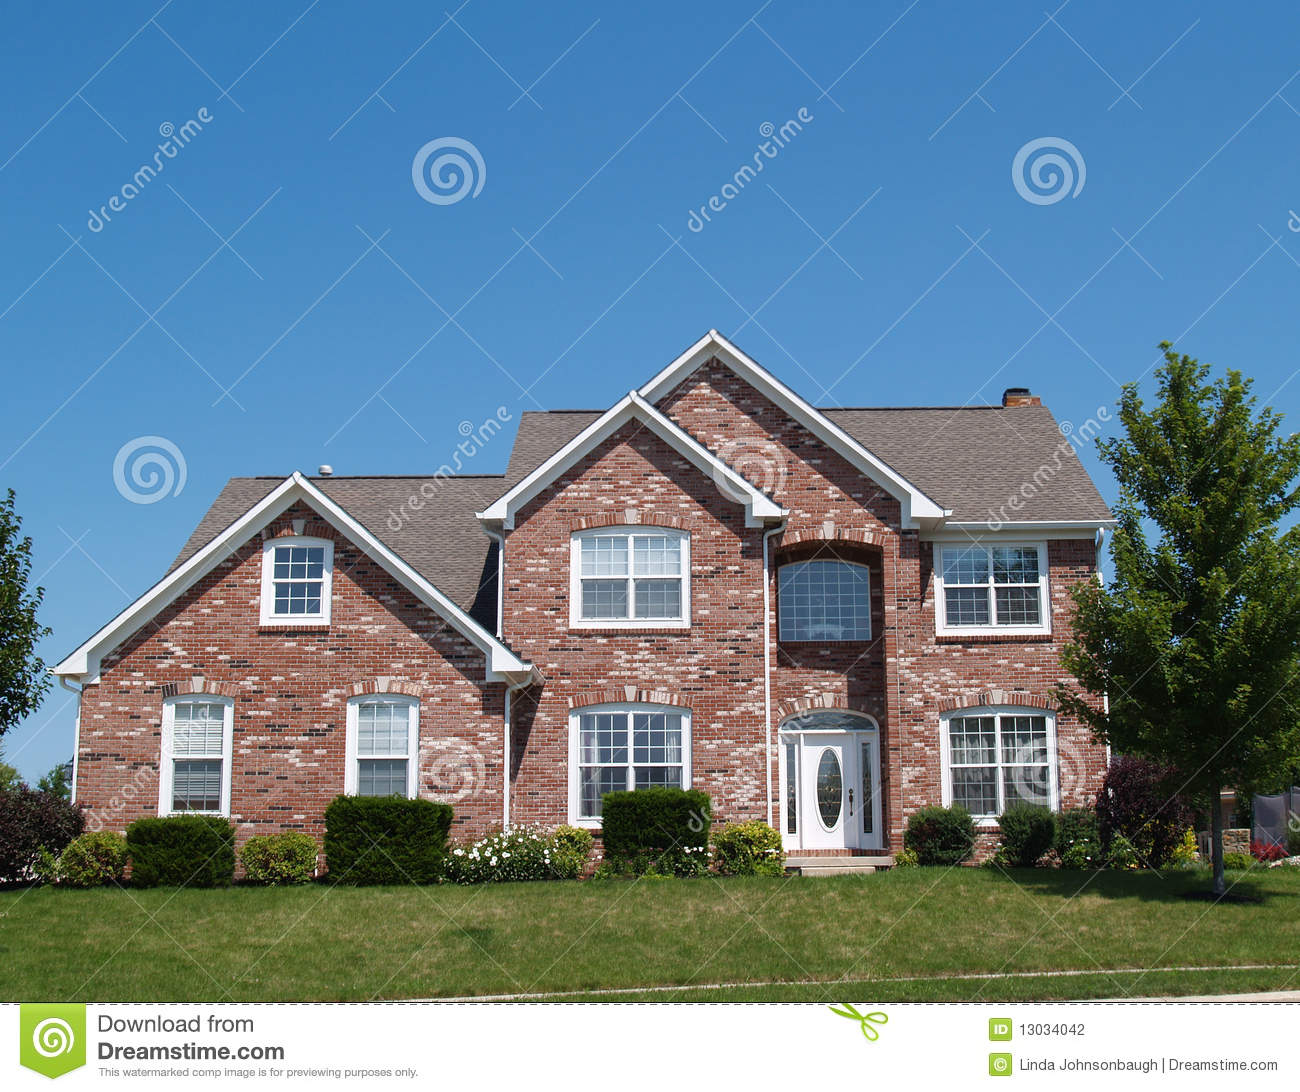 New Brick Homes: Two Story New Brick Residential Home Stock Photography